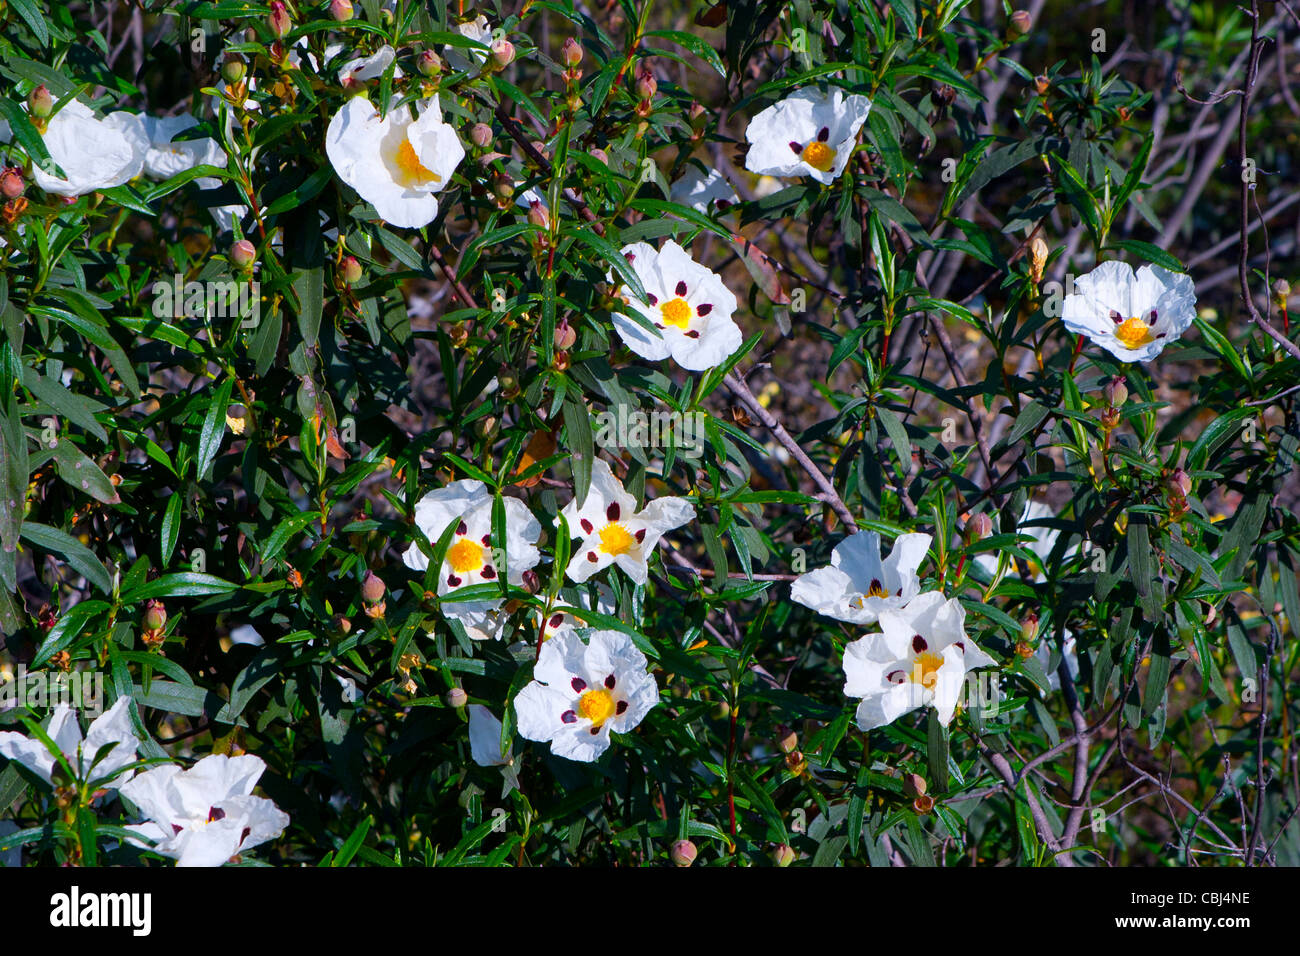 Gum Ladanum, Gum Ladanum Brown-eyed or Rockrose sticky shrub (Cistus ladanifer) flowers. - Stock Image